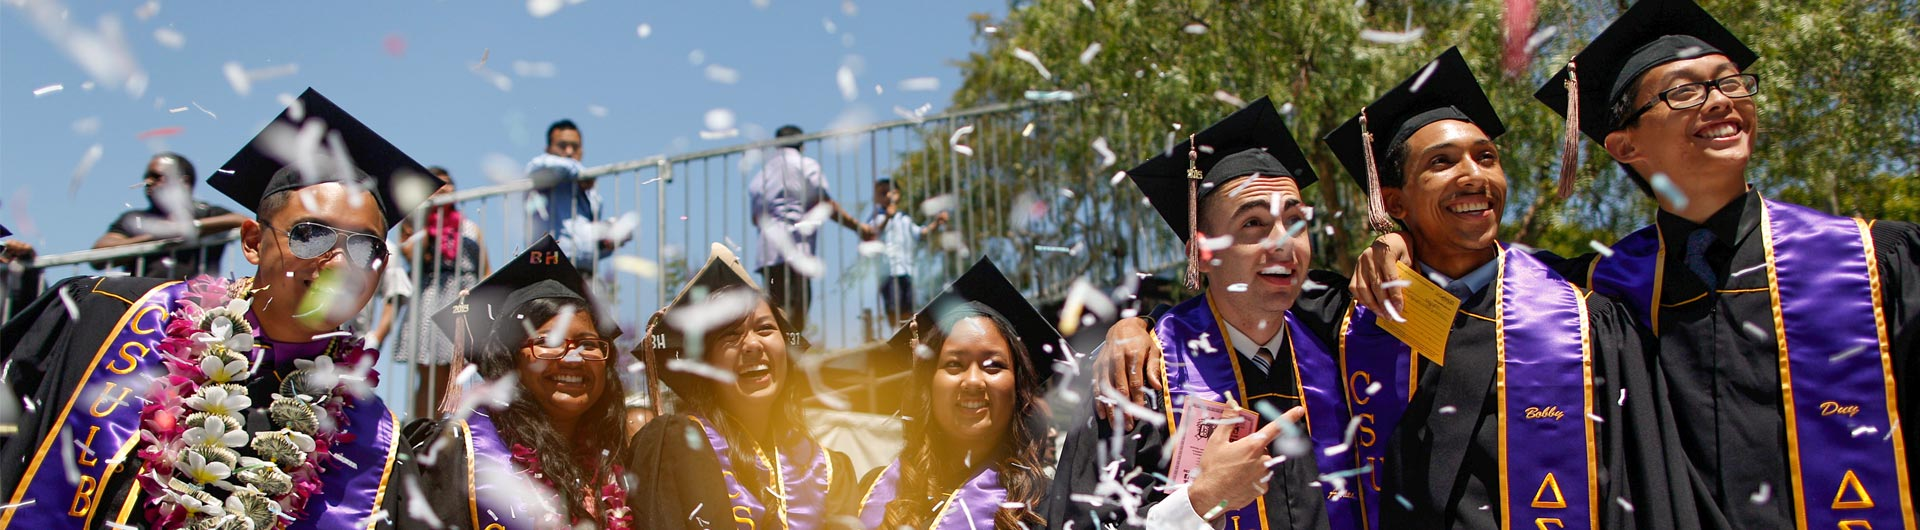 Students at the CSULB Commencement Ceremonies